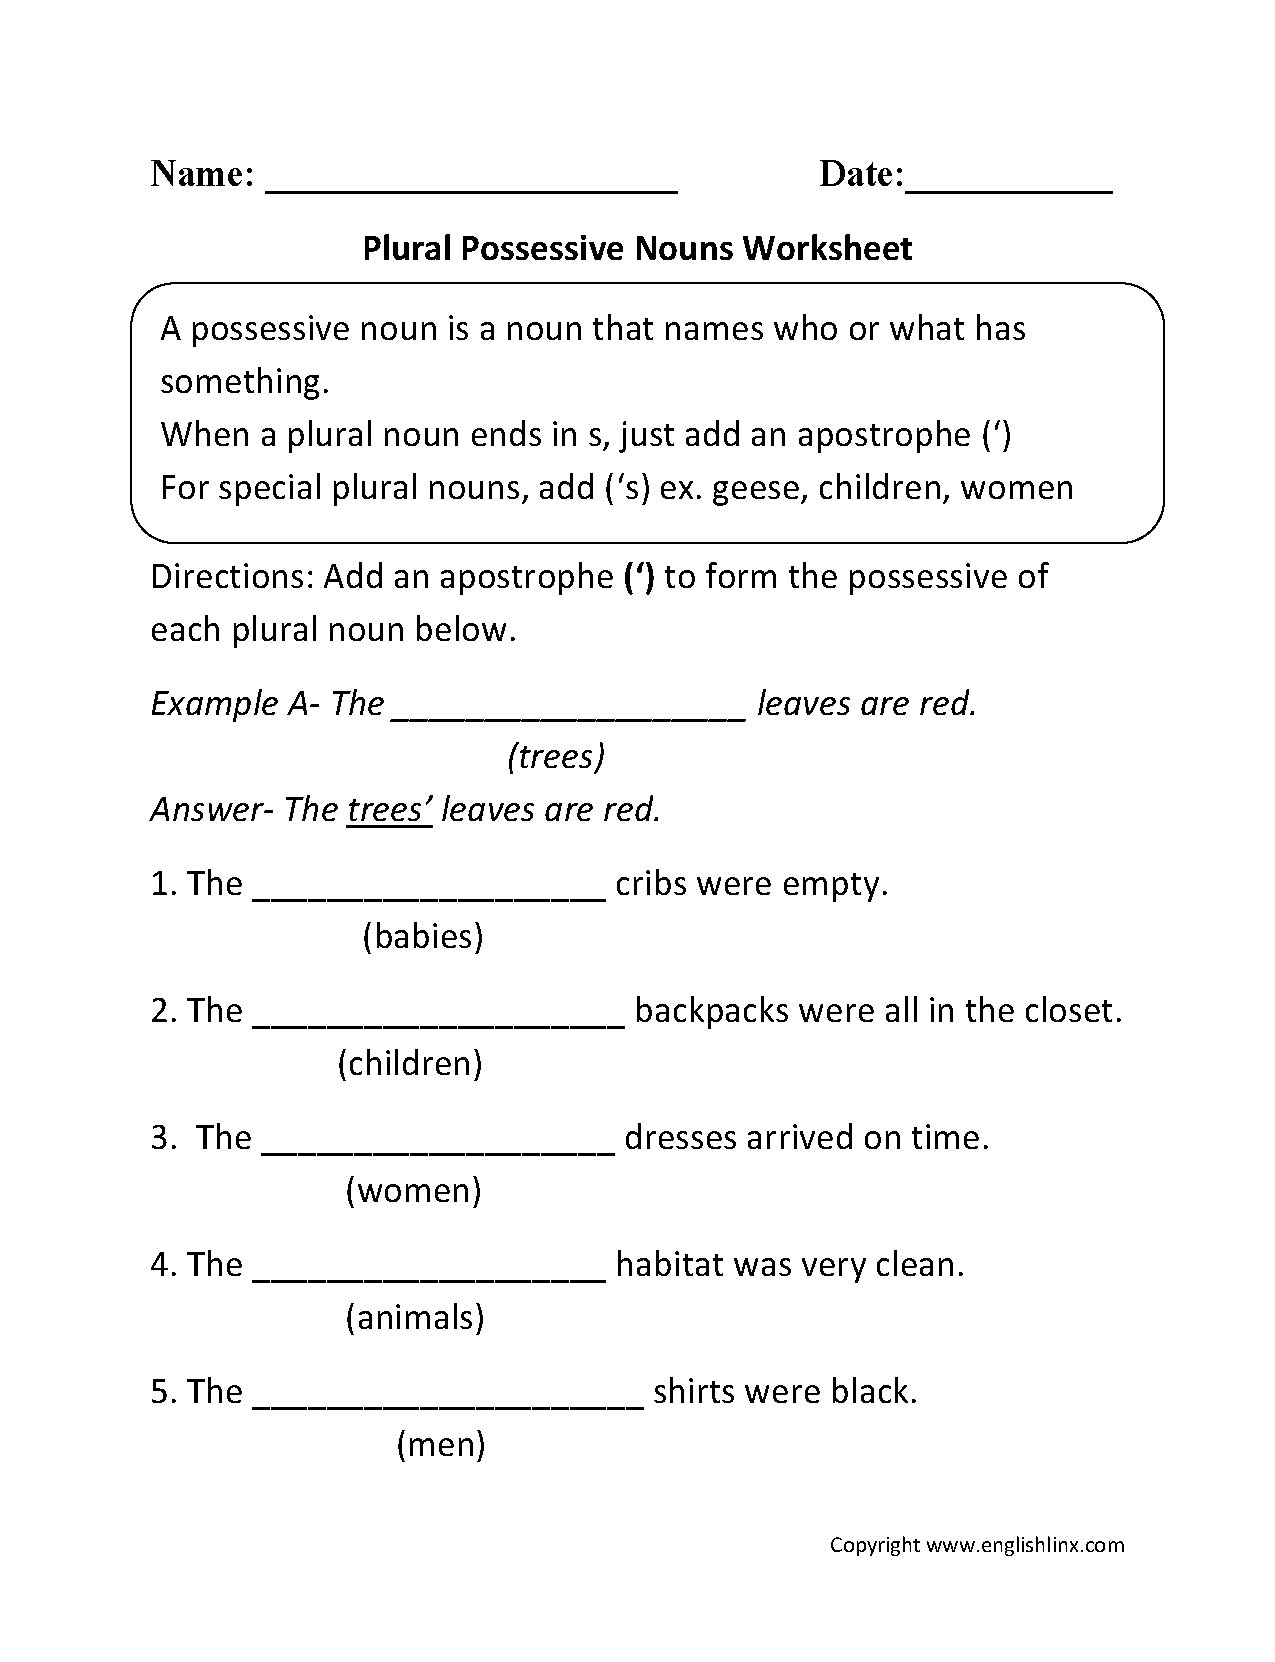 Aldiablosus  Pretty Nouns Worksheets  Possessive Nouns Worksheets With Fetching Possessive Nouns Worksheets With Extraordinary Writing Worksheets Grade  Also Teaching The Time Worksheets In Addition Worksheet On Biomes And Repeated Multiplication Worksheets As Well As Long And Short Vowel Worksheets For Rd Grade Additionally Worksheets On Multiples From Englishlinxcom With Aldiablosus  Fetching Nouns Worksheets  Possessive Nouns Worksheets With Extraordinary Possessive Nouns Worksheets And Pretty Writing Worksheets Grade  Also Teaching The Time Worksheets In Addition Worksheet On Biomes From Englishlinxcom